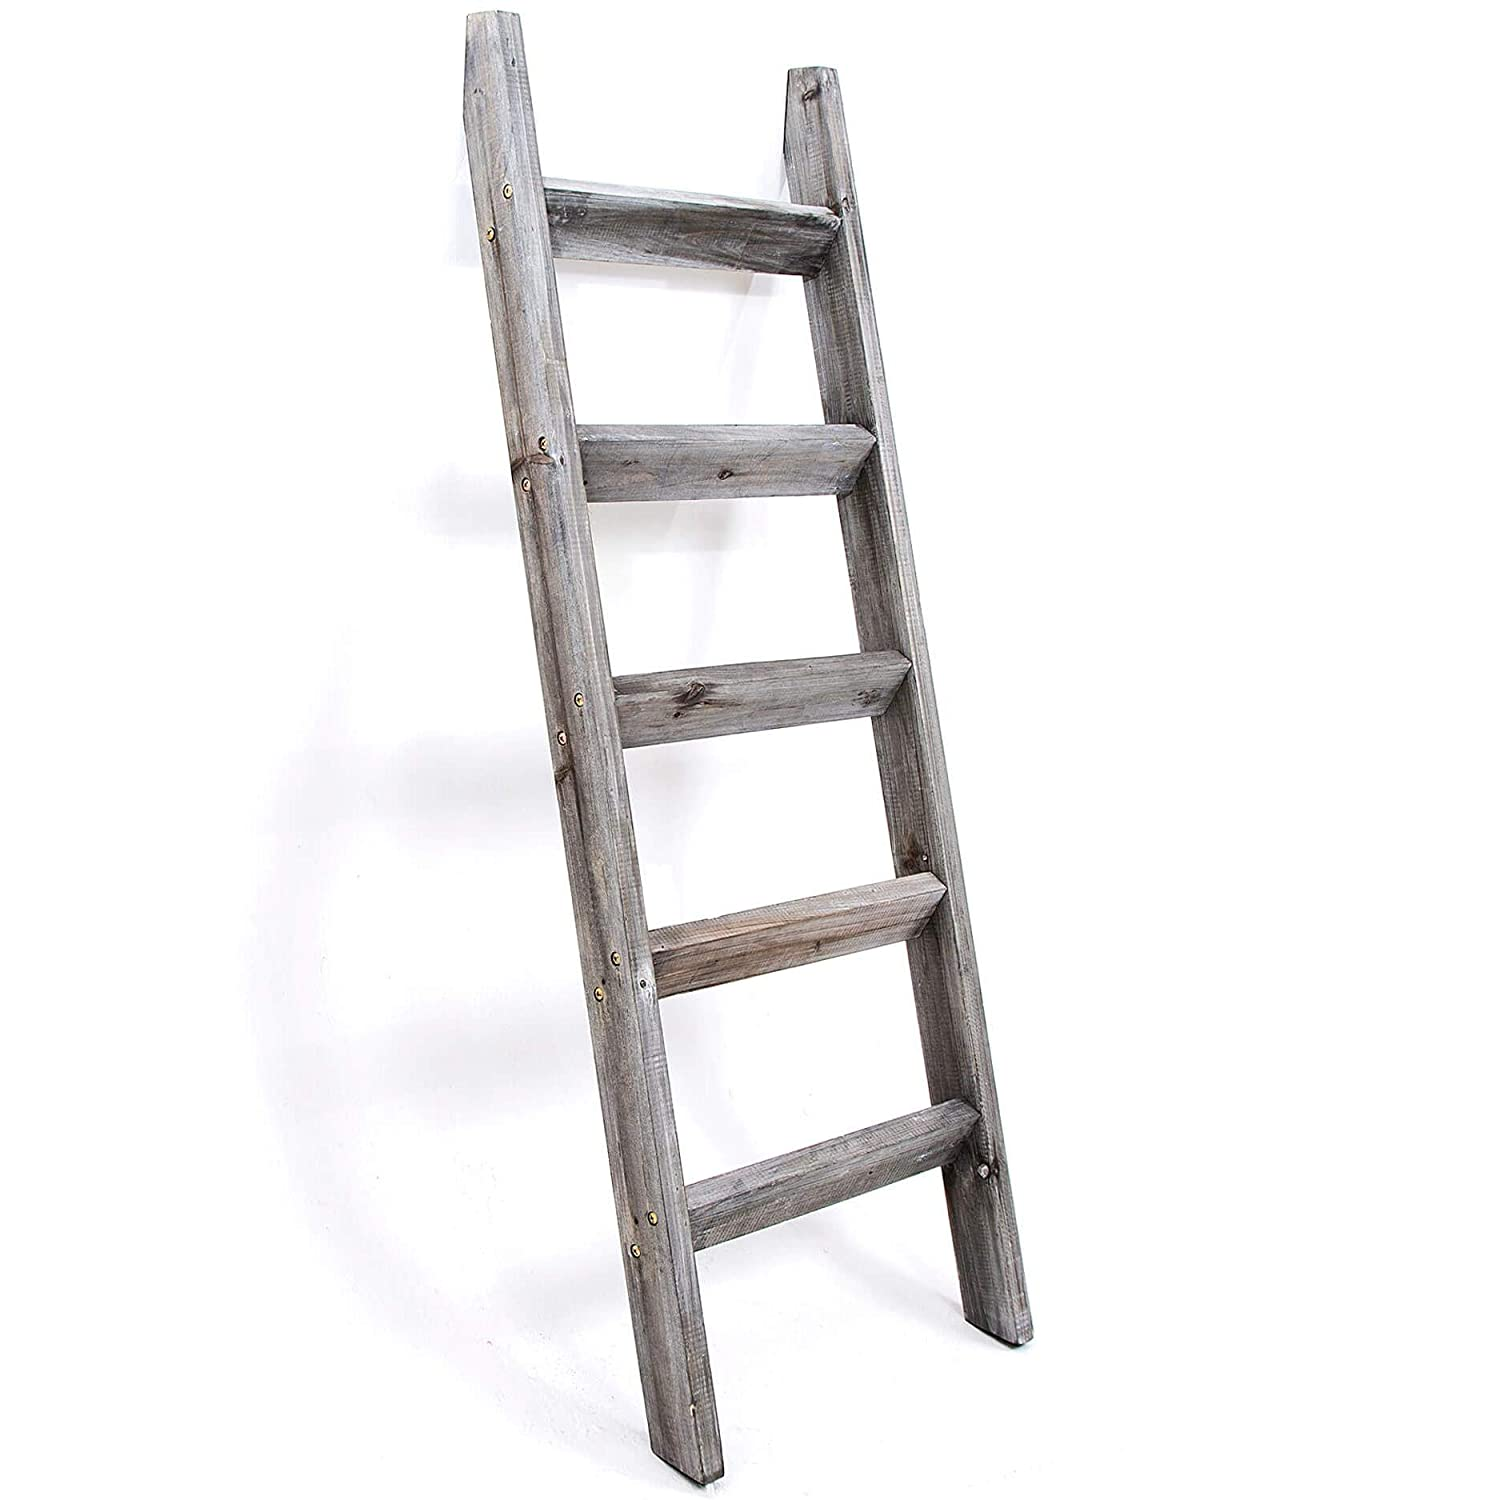 Hallops Blanket Ladder 5 ft. Premium Wood Rustic Decorative Quilt Ladder. White Vintage Wooden Decor. Throw Blankets Holder Rack